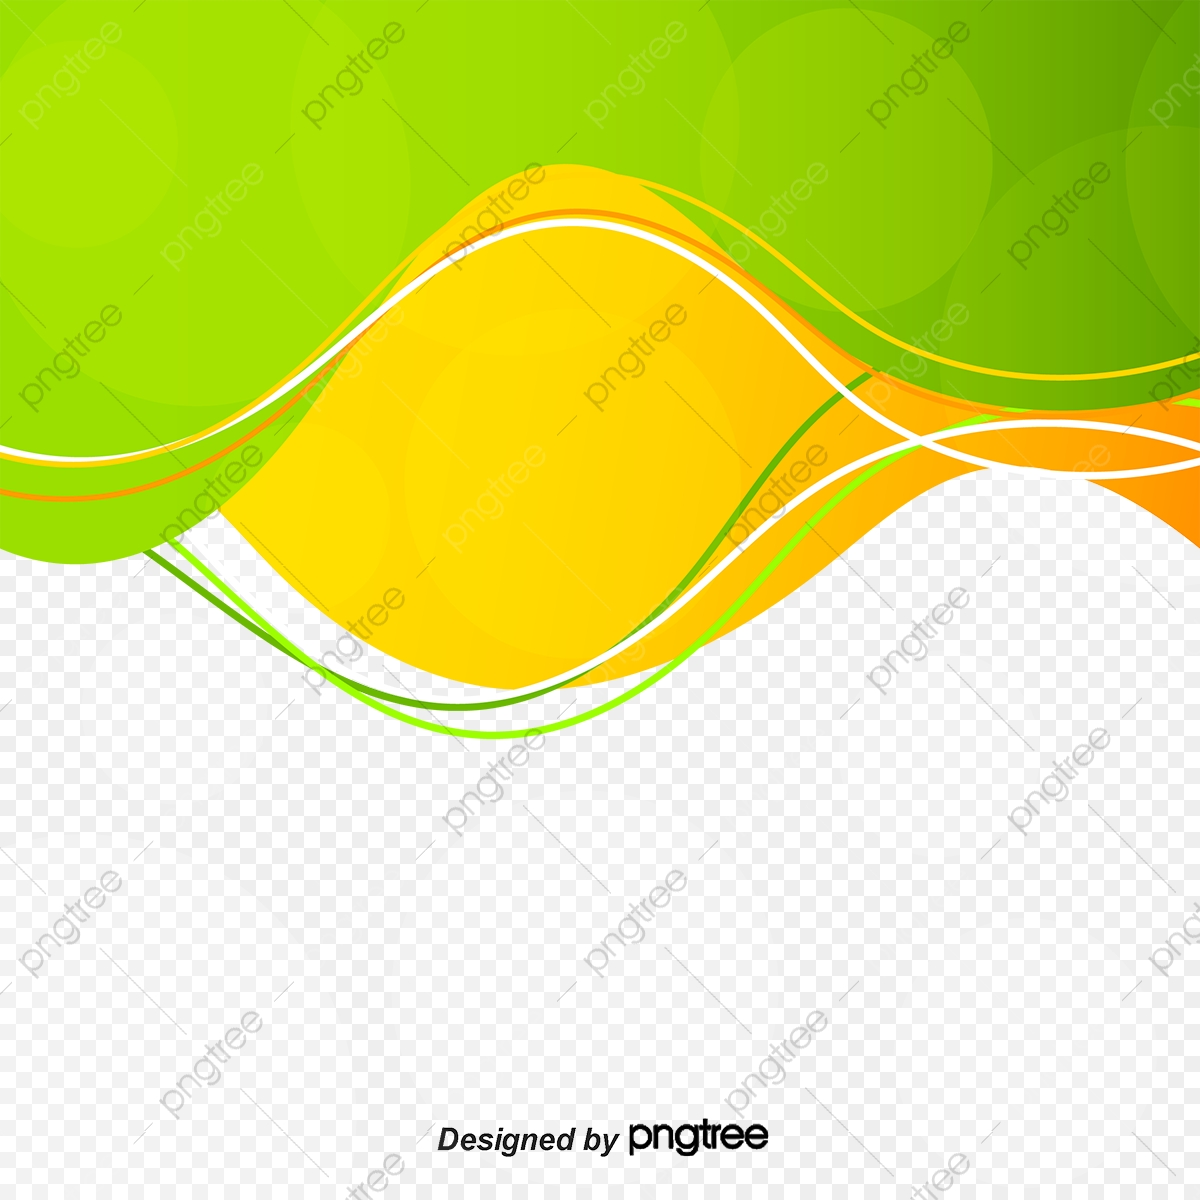 Download 6600 Background Keren Lengkungan HD Terbaru